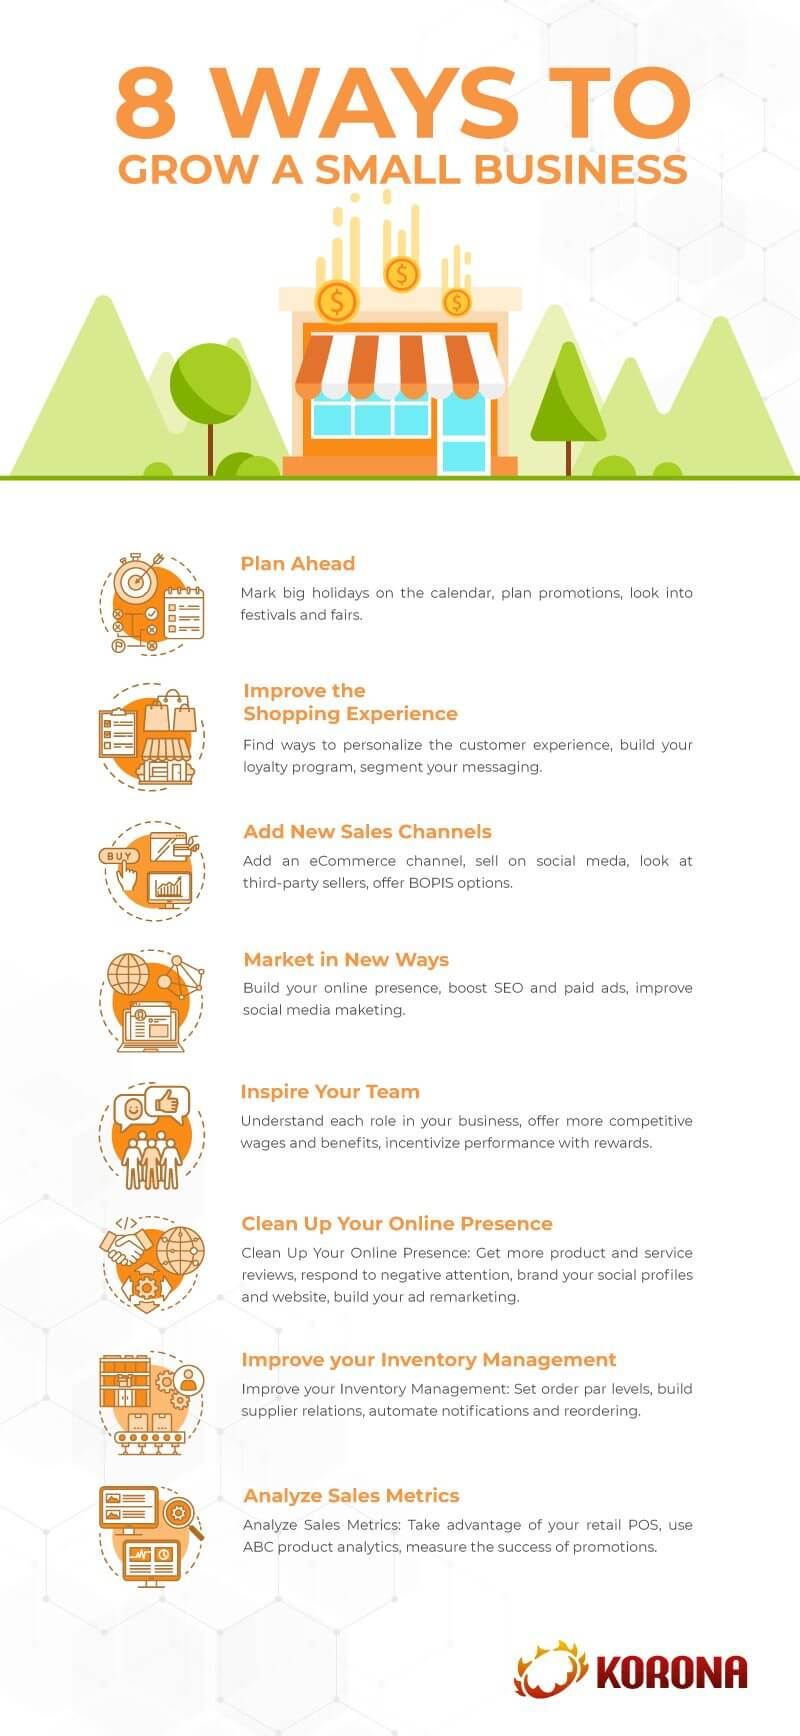 An infograph listing the 8 ways to grow a small business